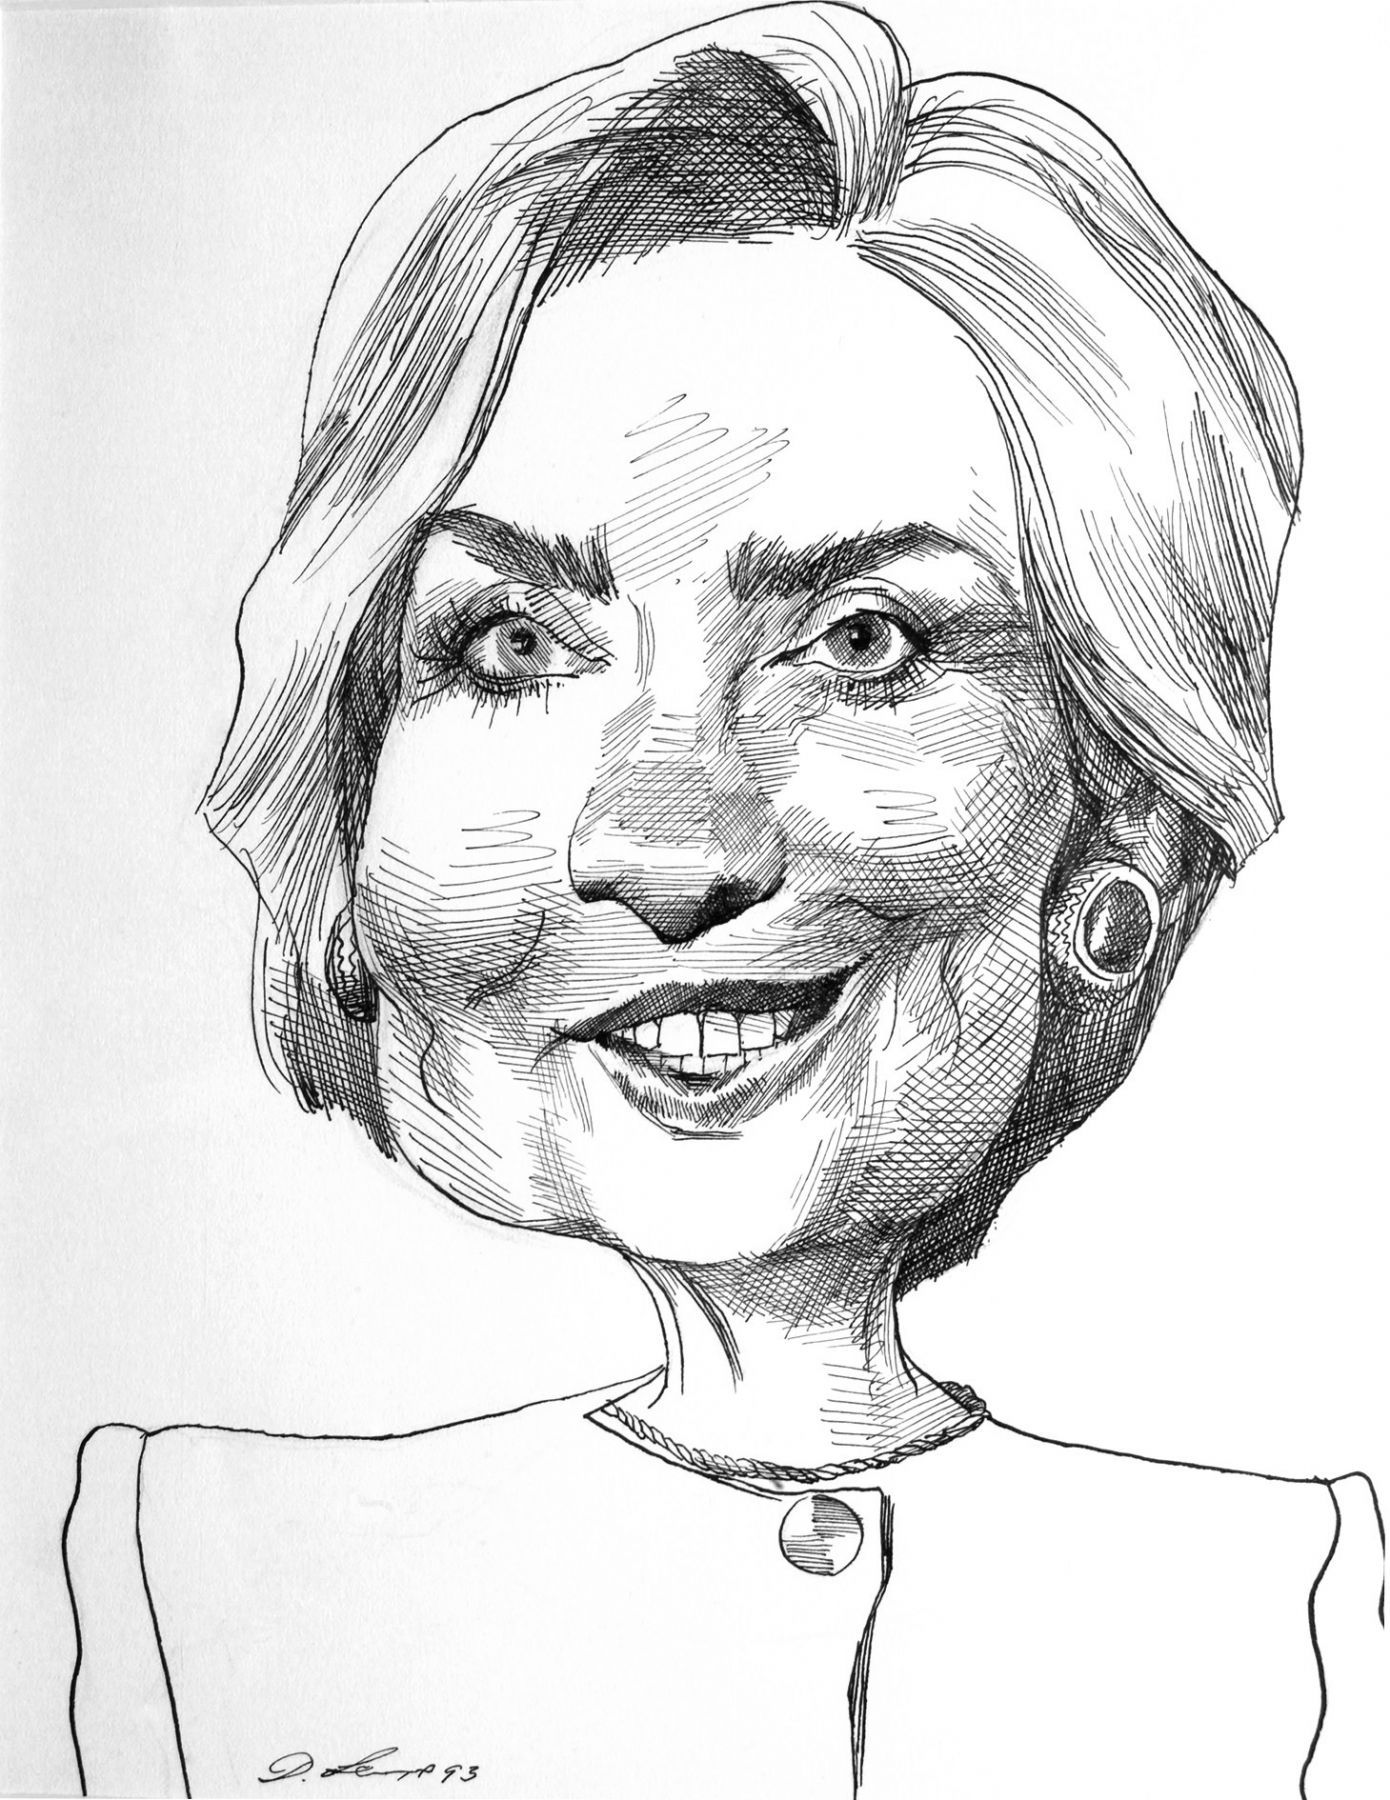 David Levine, Hillary Clinton (SOLD), 1993, ink on paper, 13 3/4 x 11 inches